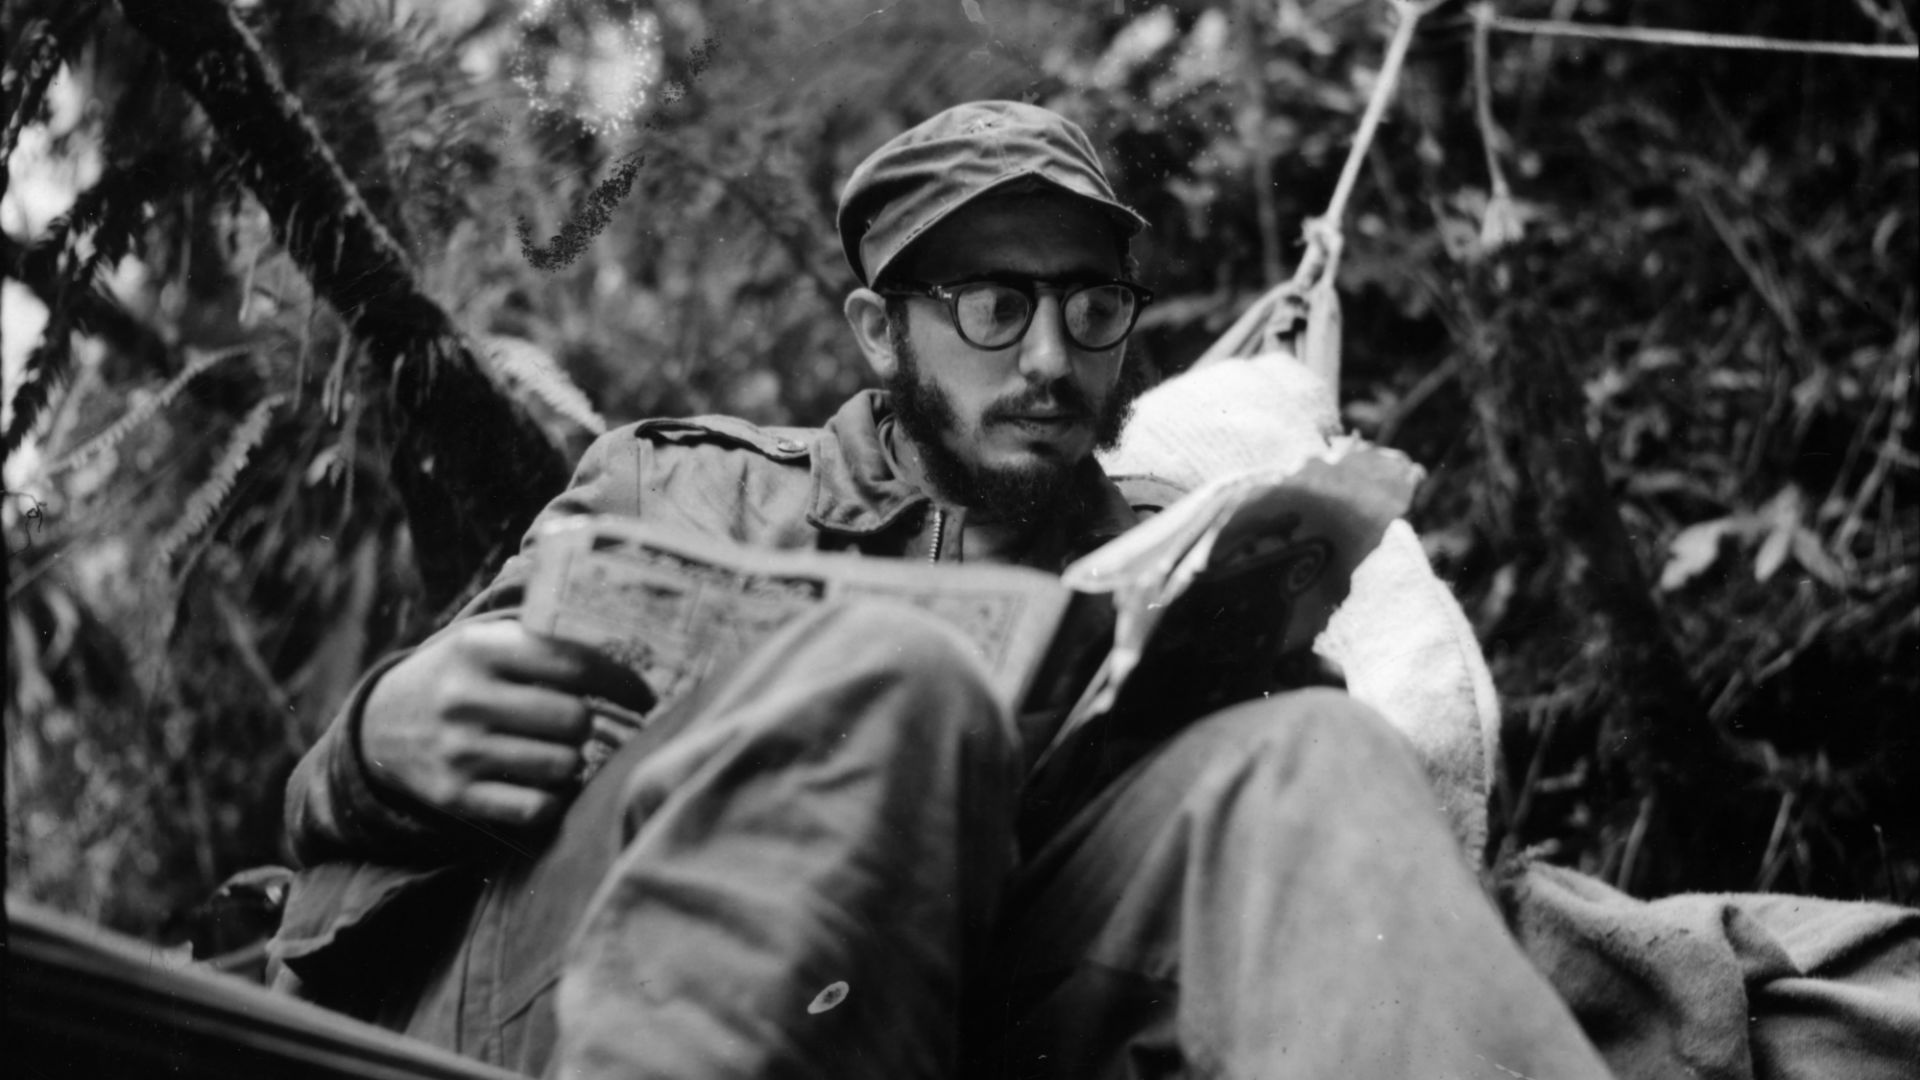 Fidel Castro at an outpost in the Sierra Maestra. Castro commanded his forces in this region from December 1956 to November 1958.